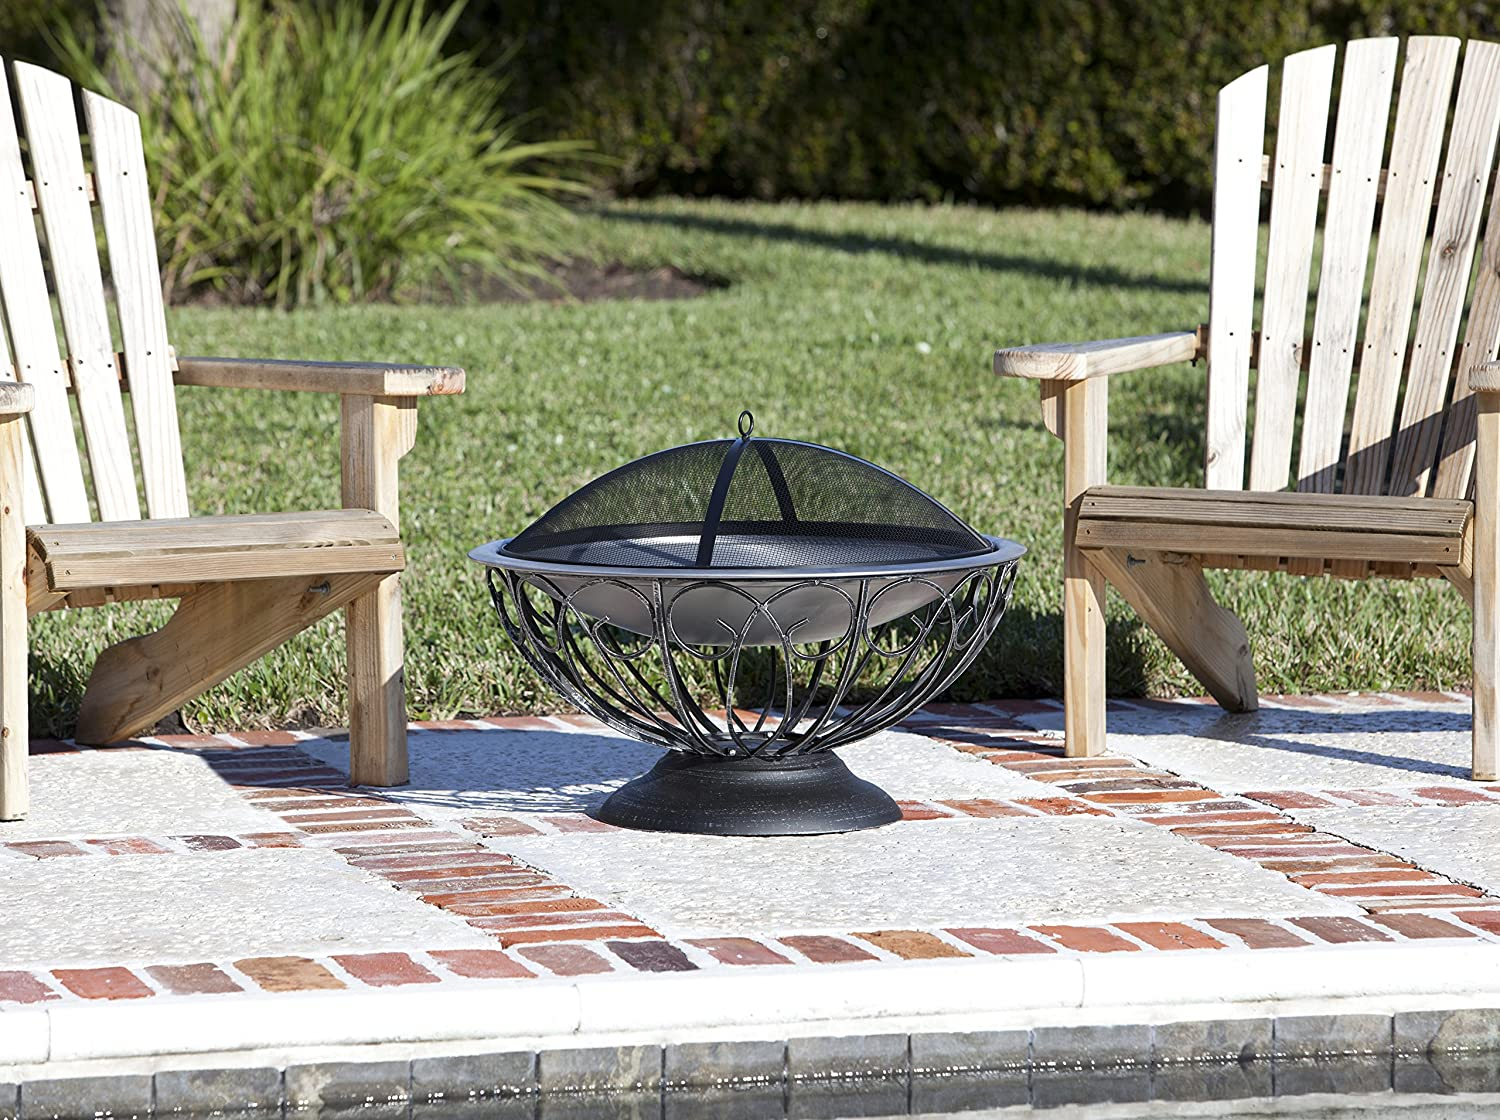 Amazon.com : Fire Sense Stainless Steel Urn Fire Pit : Outdoor ...